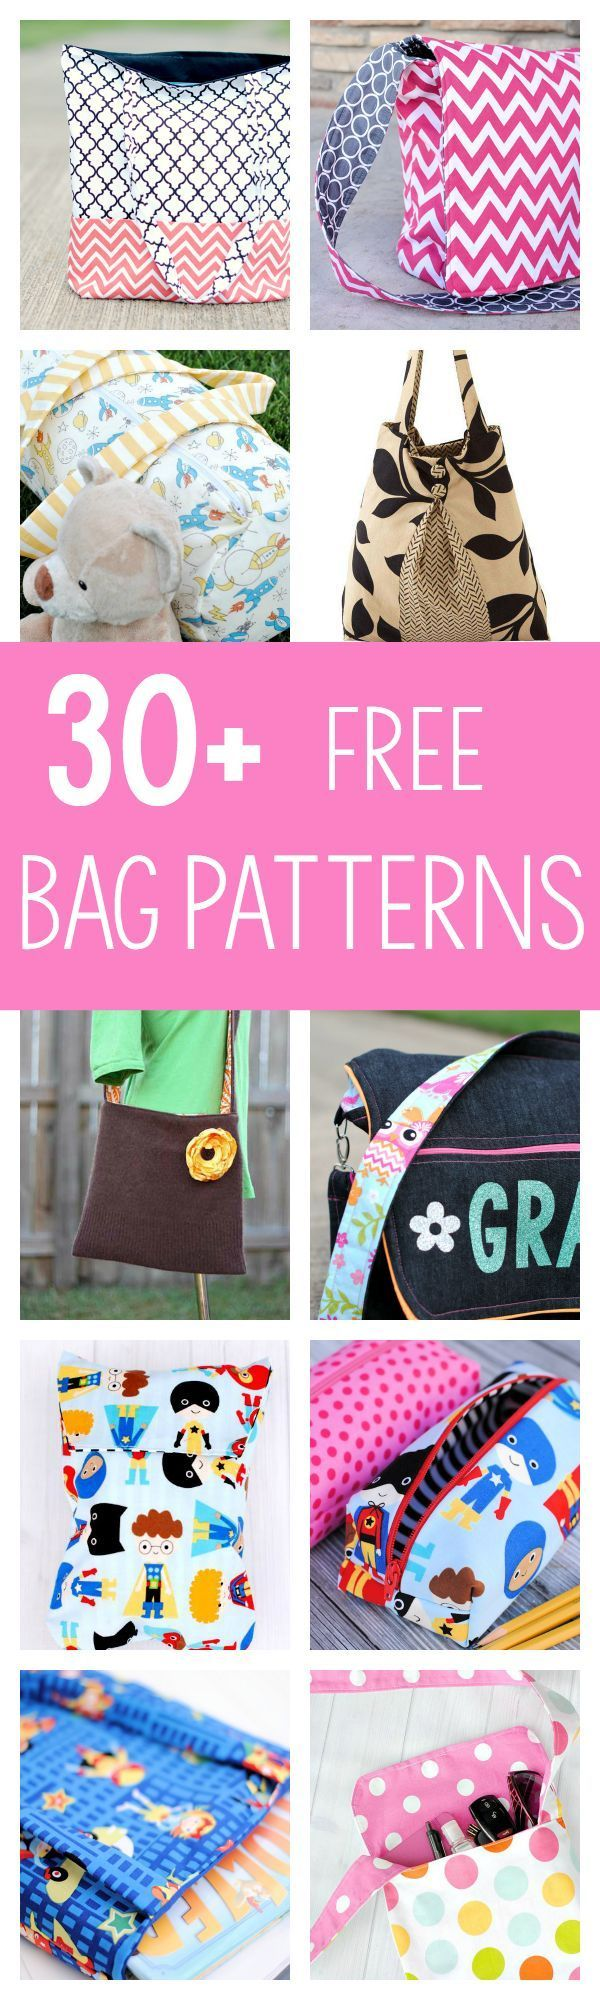 Tons of Great Free Bag Patterns to Sew …